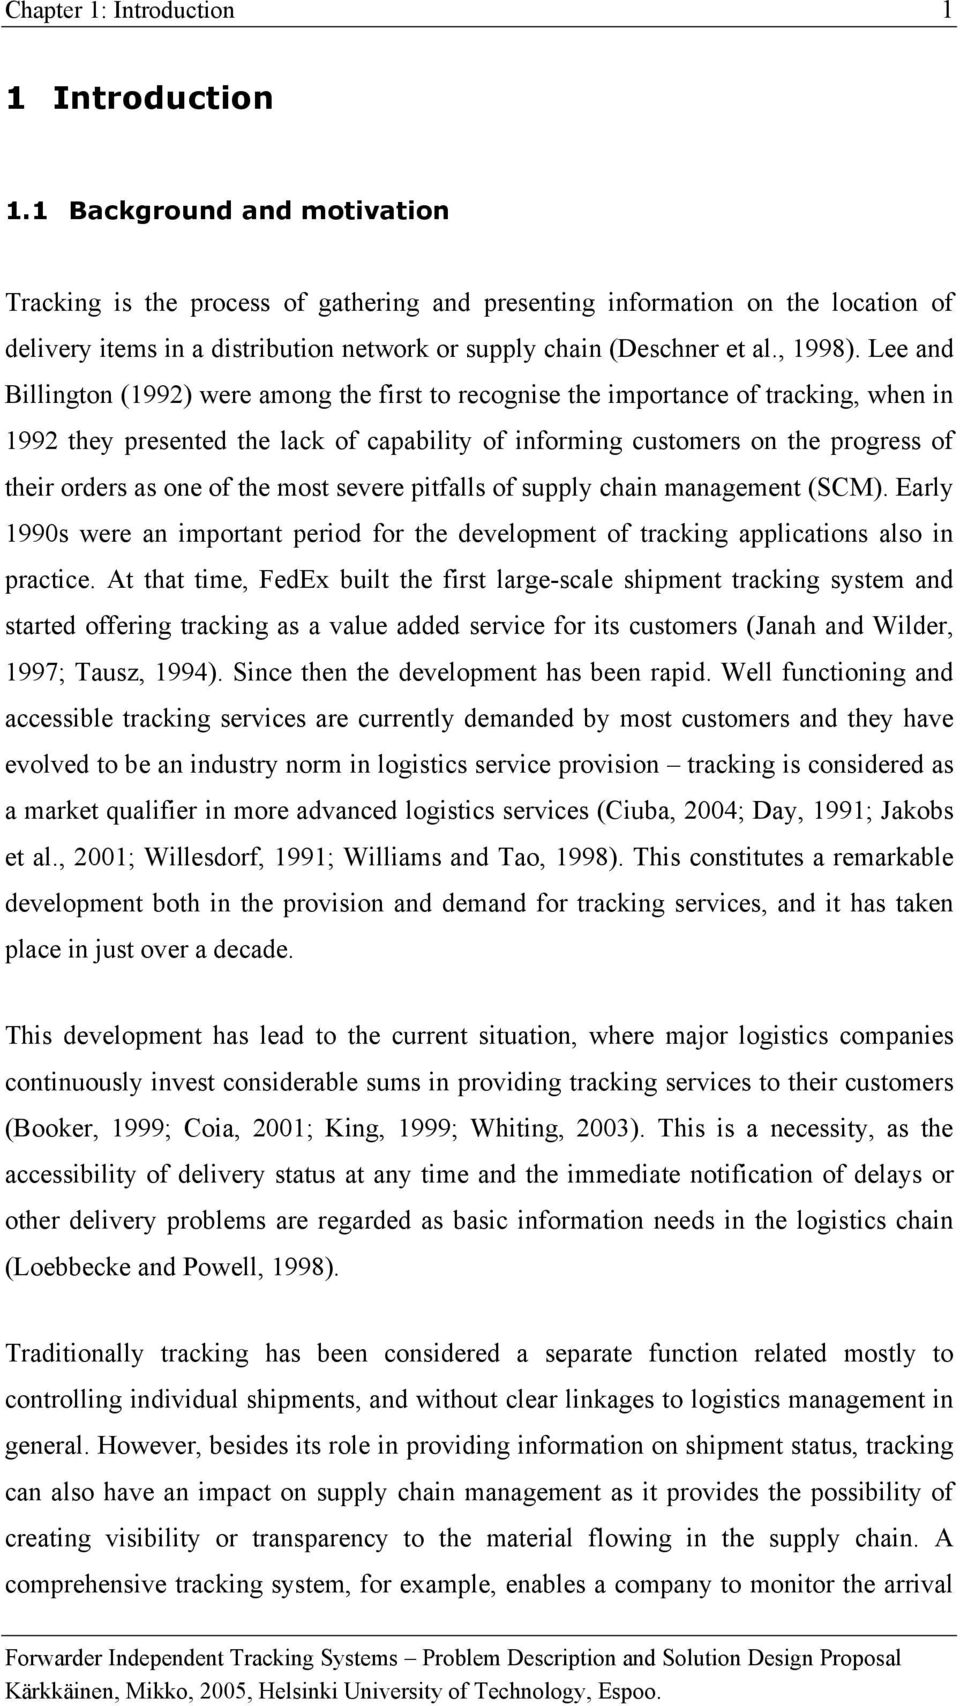 Lee and Billington (1992) were among the first to recognise the importance of tracking, when in 1992 they presented the lack of capability of informing customers on the progress of their orders as